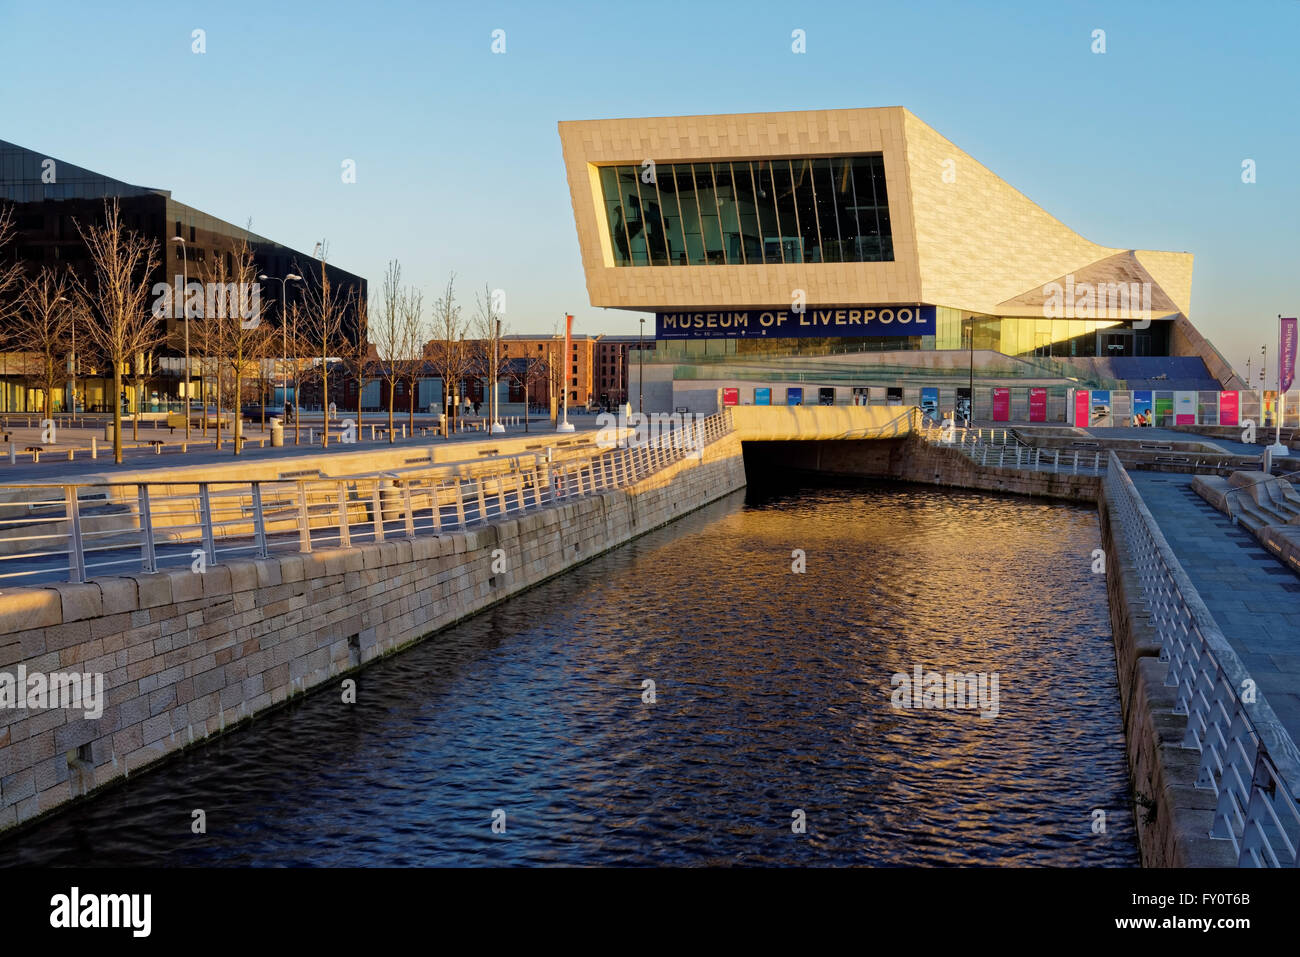 UK,Liverpool,Museum of Liverpool and Leeds-Liverpool Canal - Stock Image